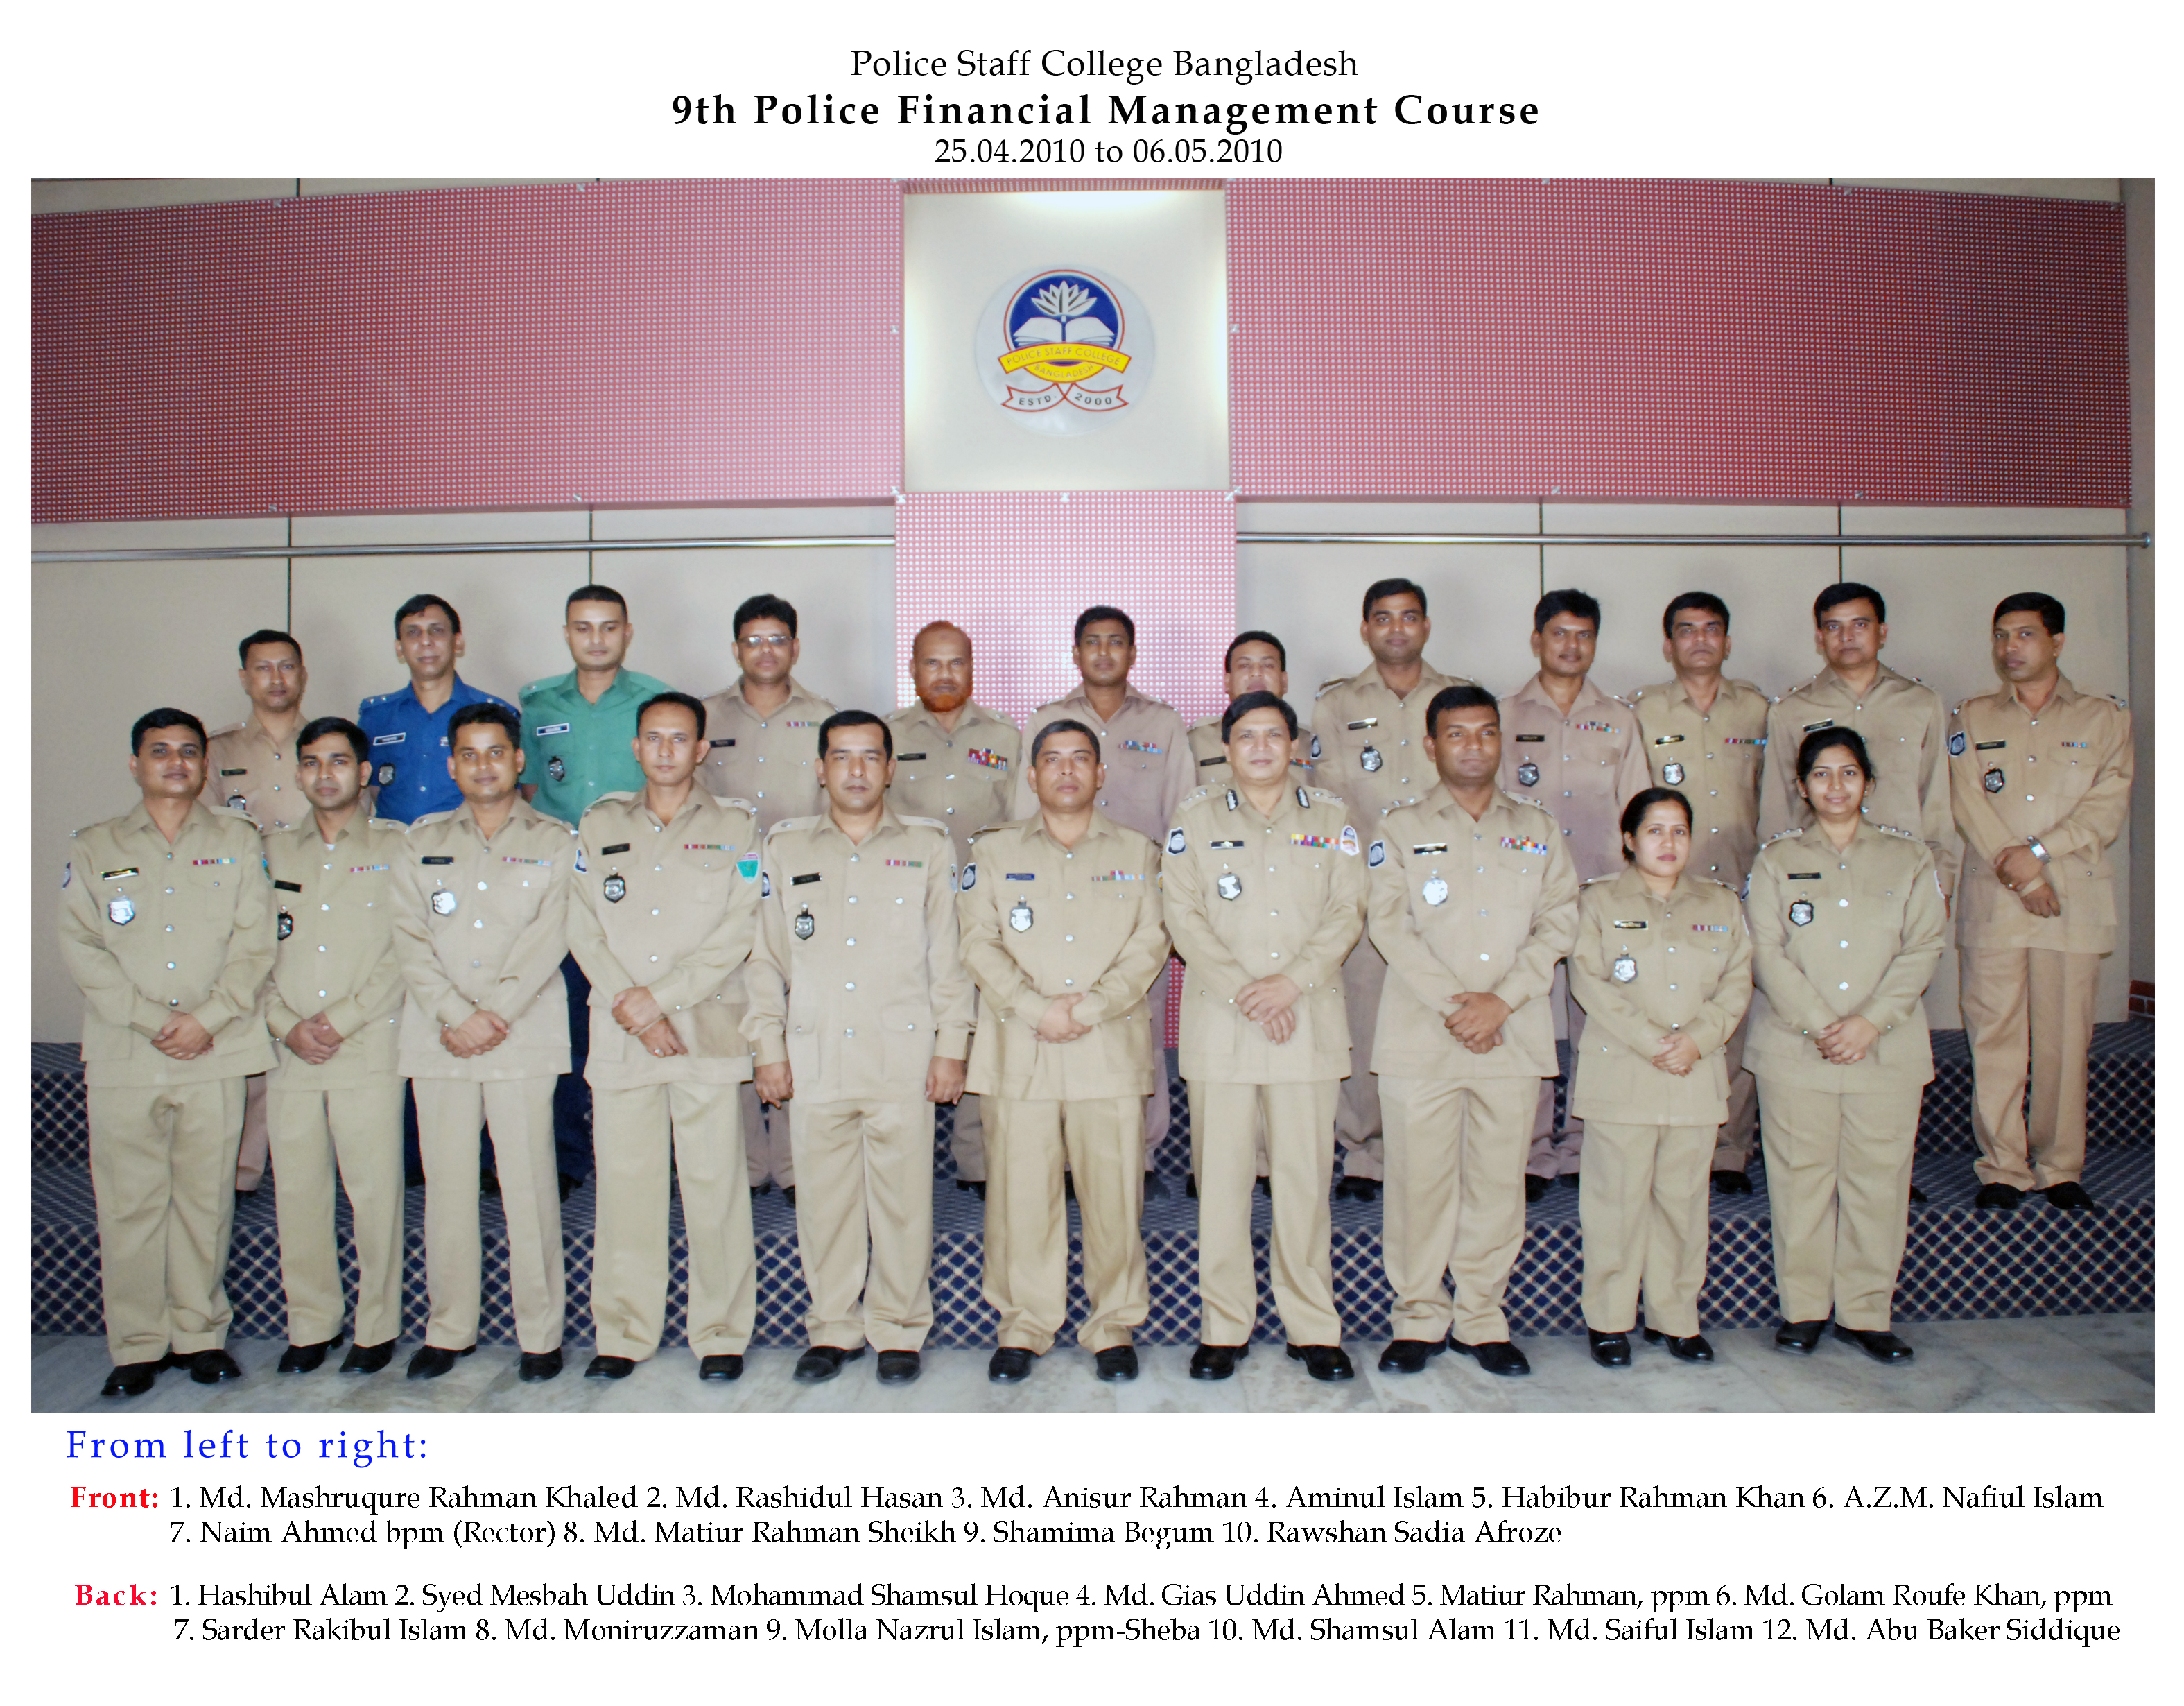 Participant of 9th Police Financial Management Certificate Course.